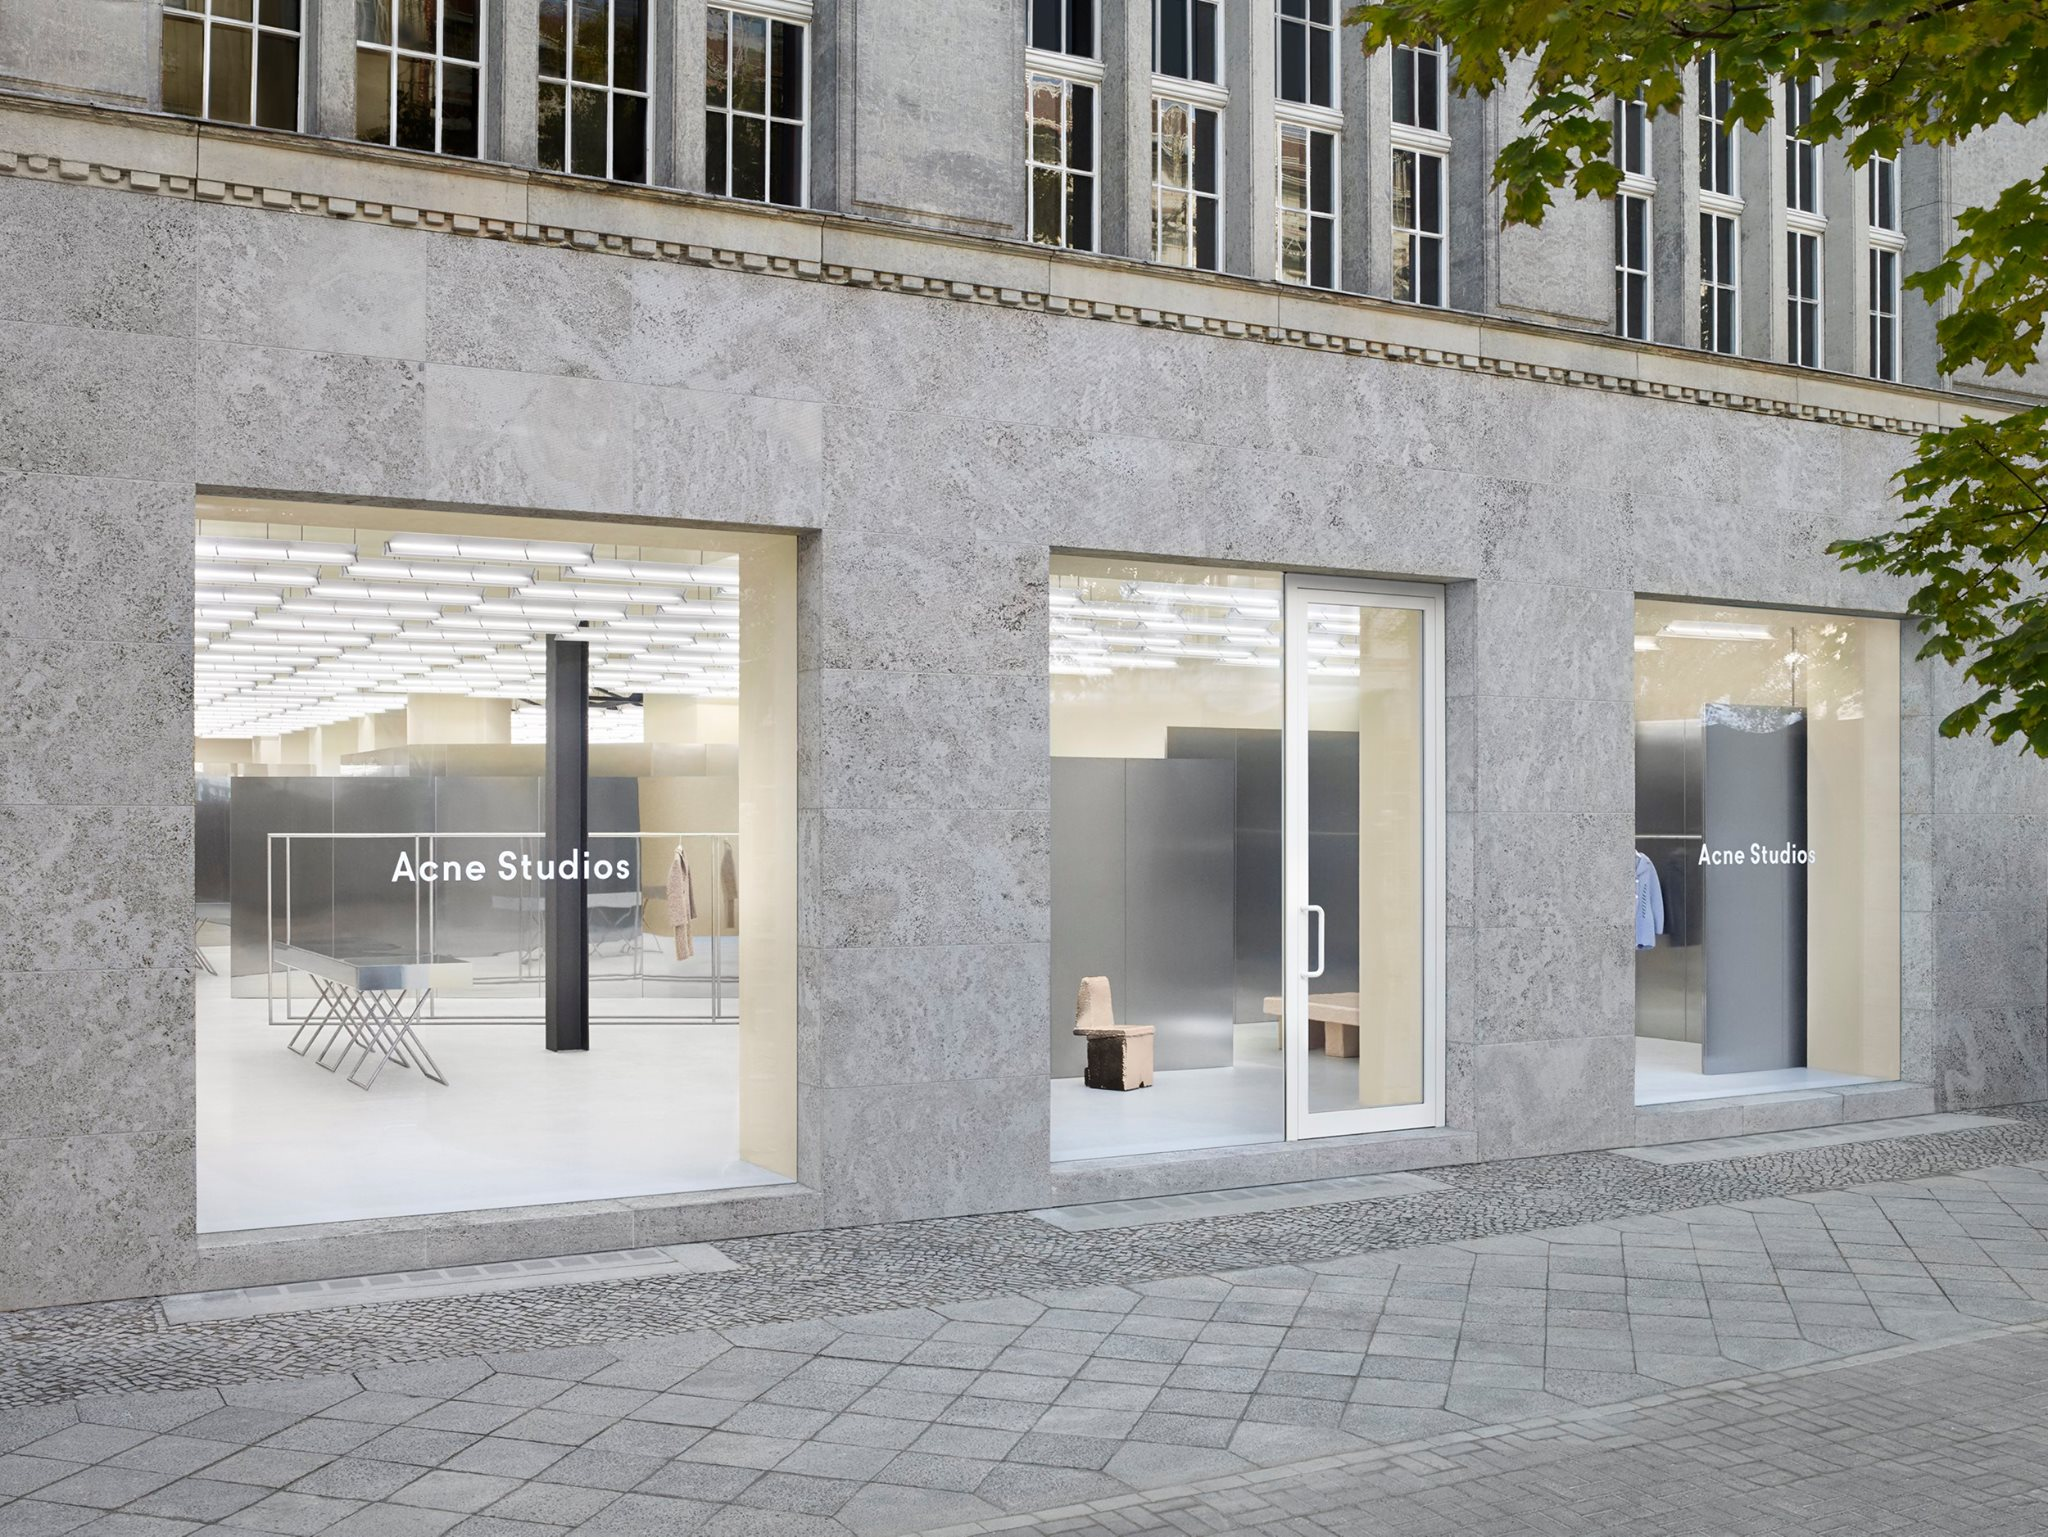 magasin Acne Studios Berlin